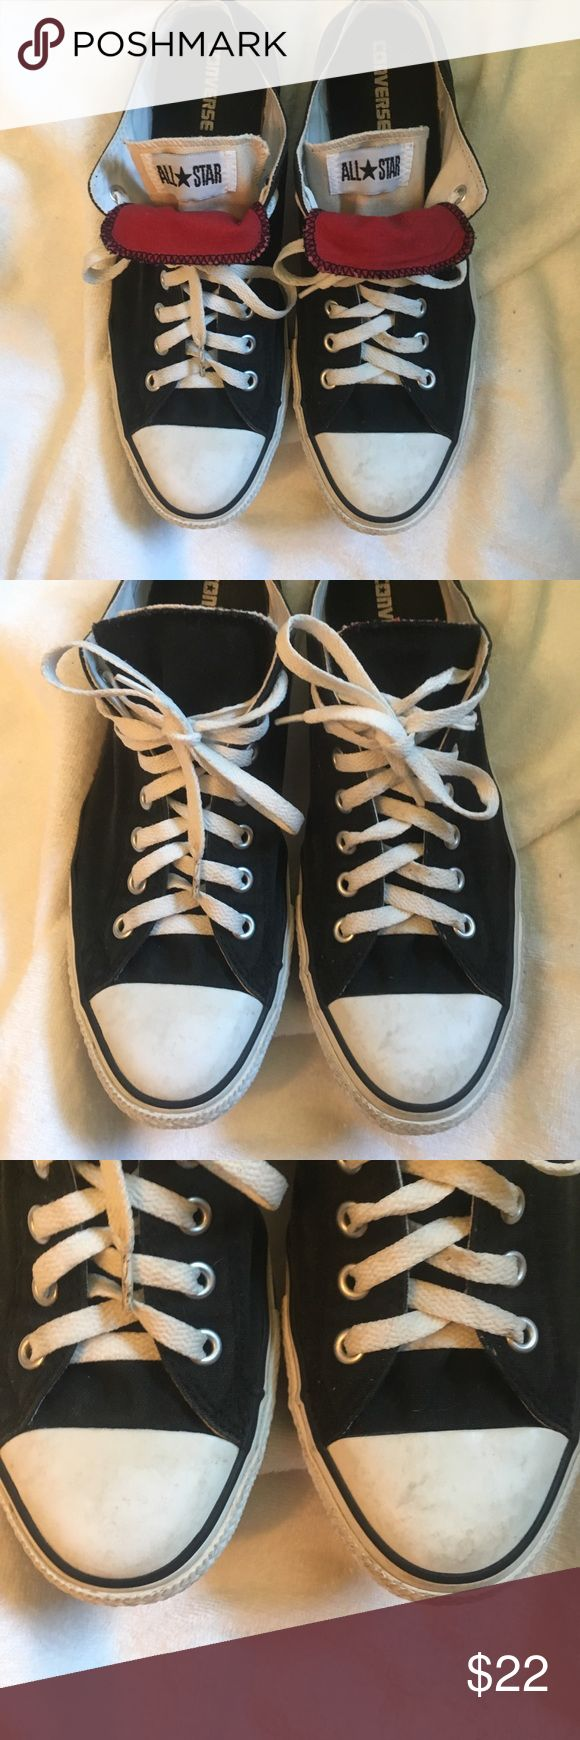 Converse All Star Regularly worn but in good shape. Unisex Men's 11 Woman's 13. Look at pics for scuff/dirt marks. Double tongue Converse Shoes Sneakers